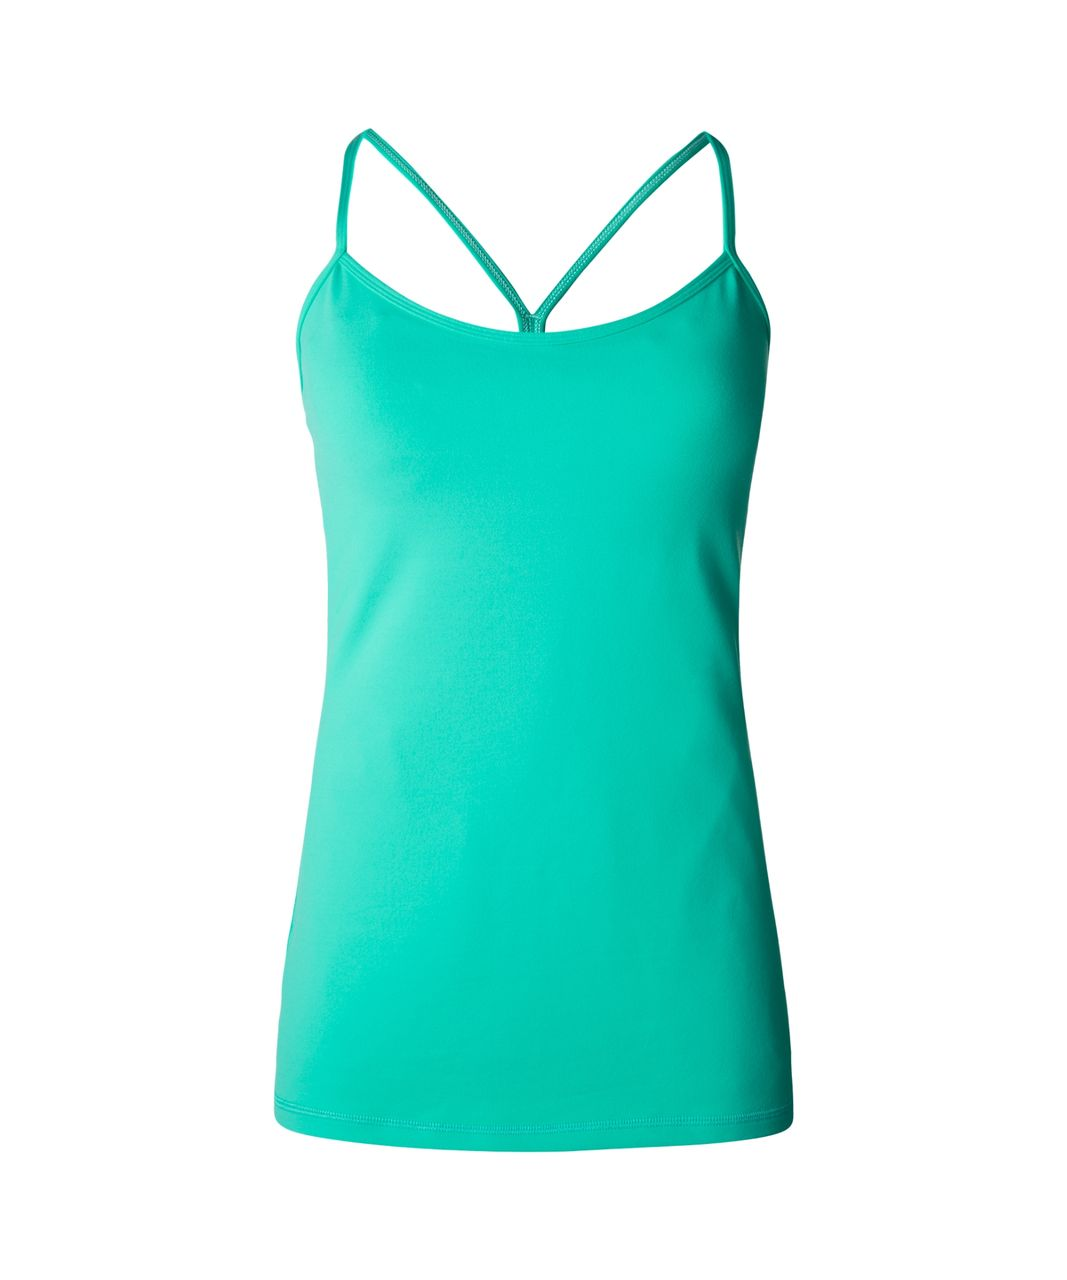 Lululemon Power Y Tank - Bali Breeze